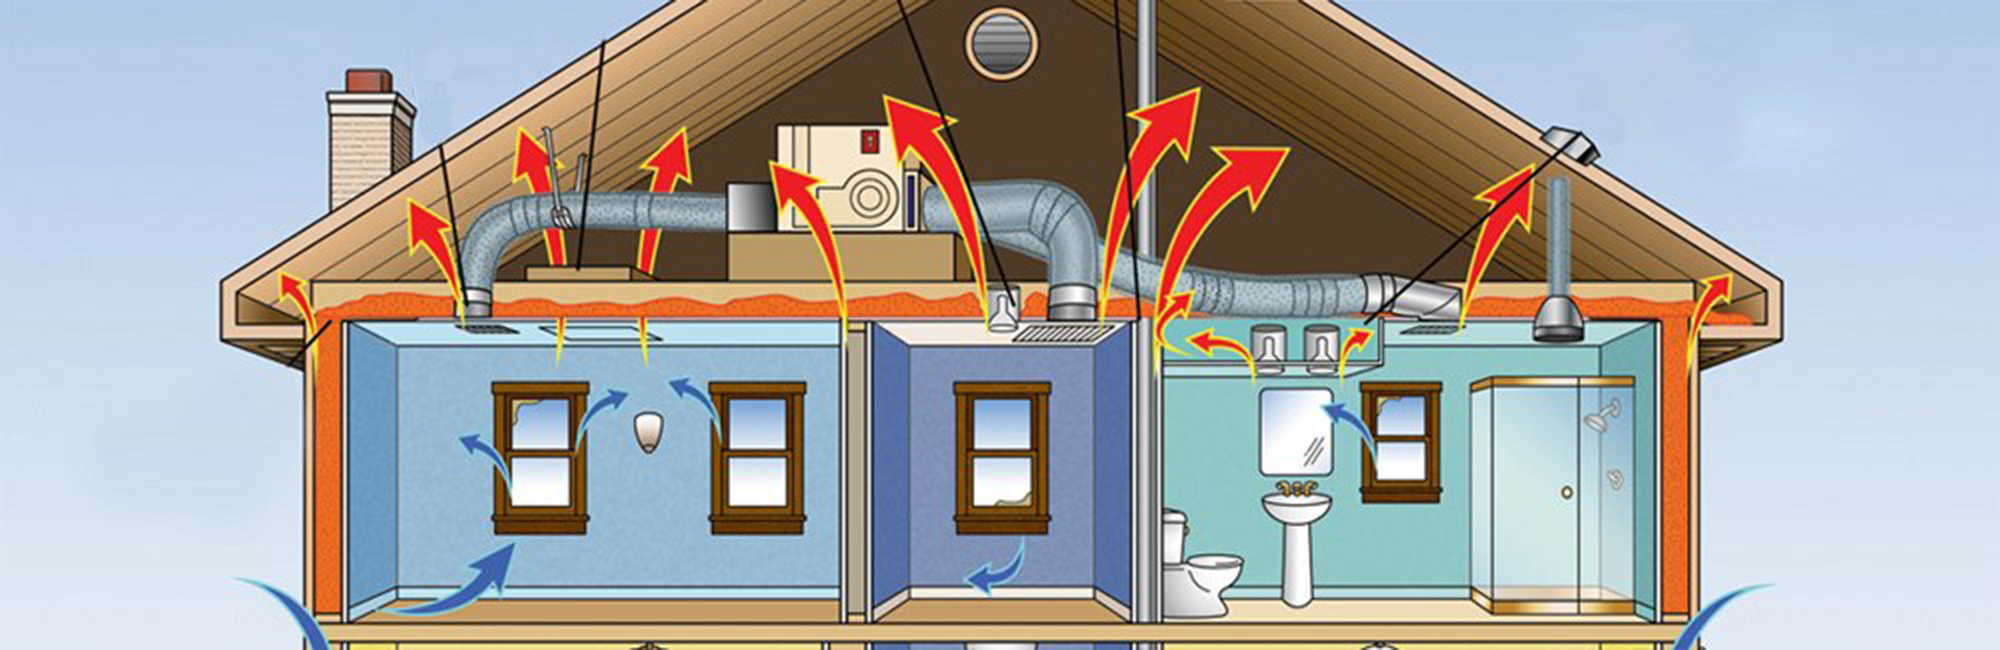 sealing-air-leaks-to-control-moisture